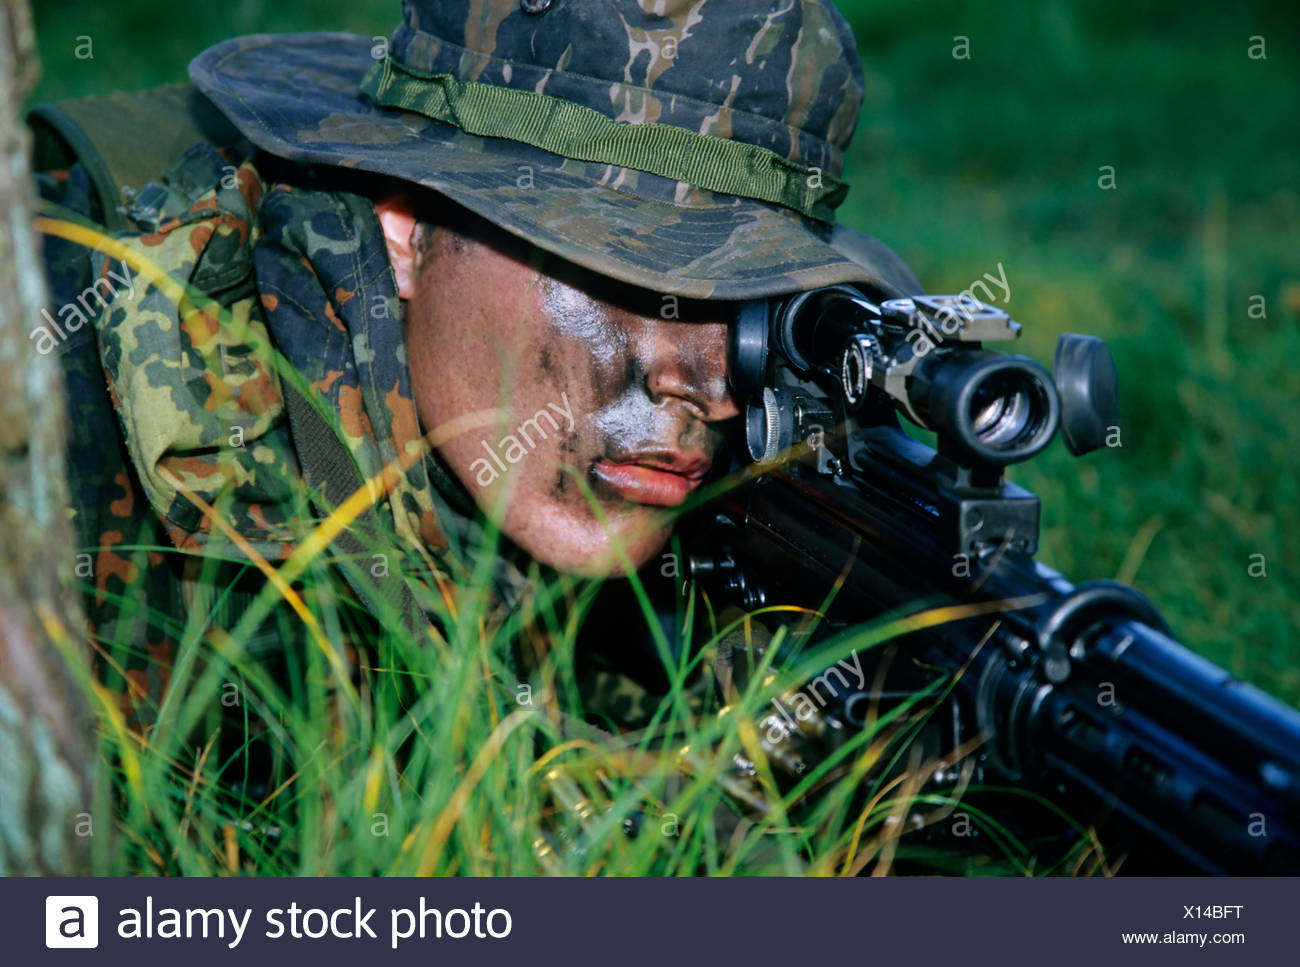 Soldier of the German special forces Kampfschwimmerkompanie in training, sniper with gun G 3 and telescopic sight, camouflage - Stock Image